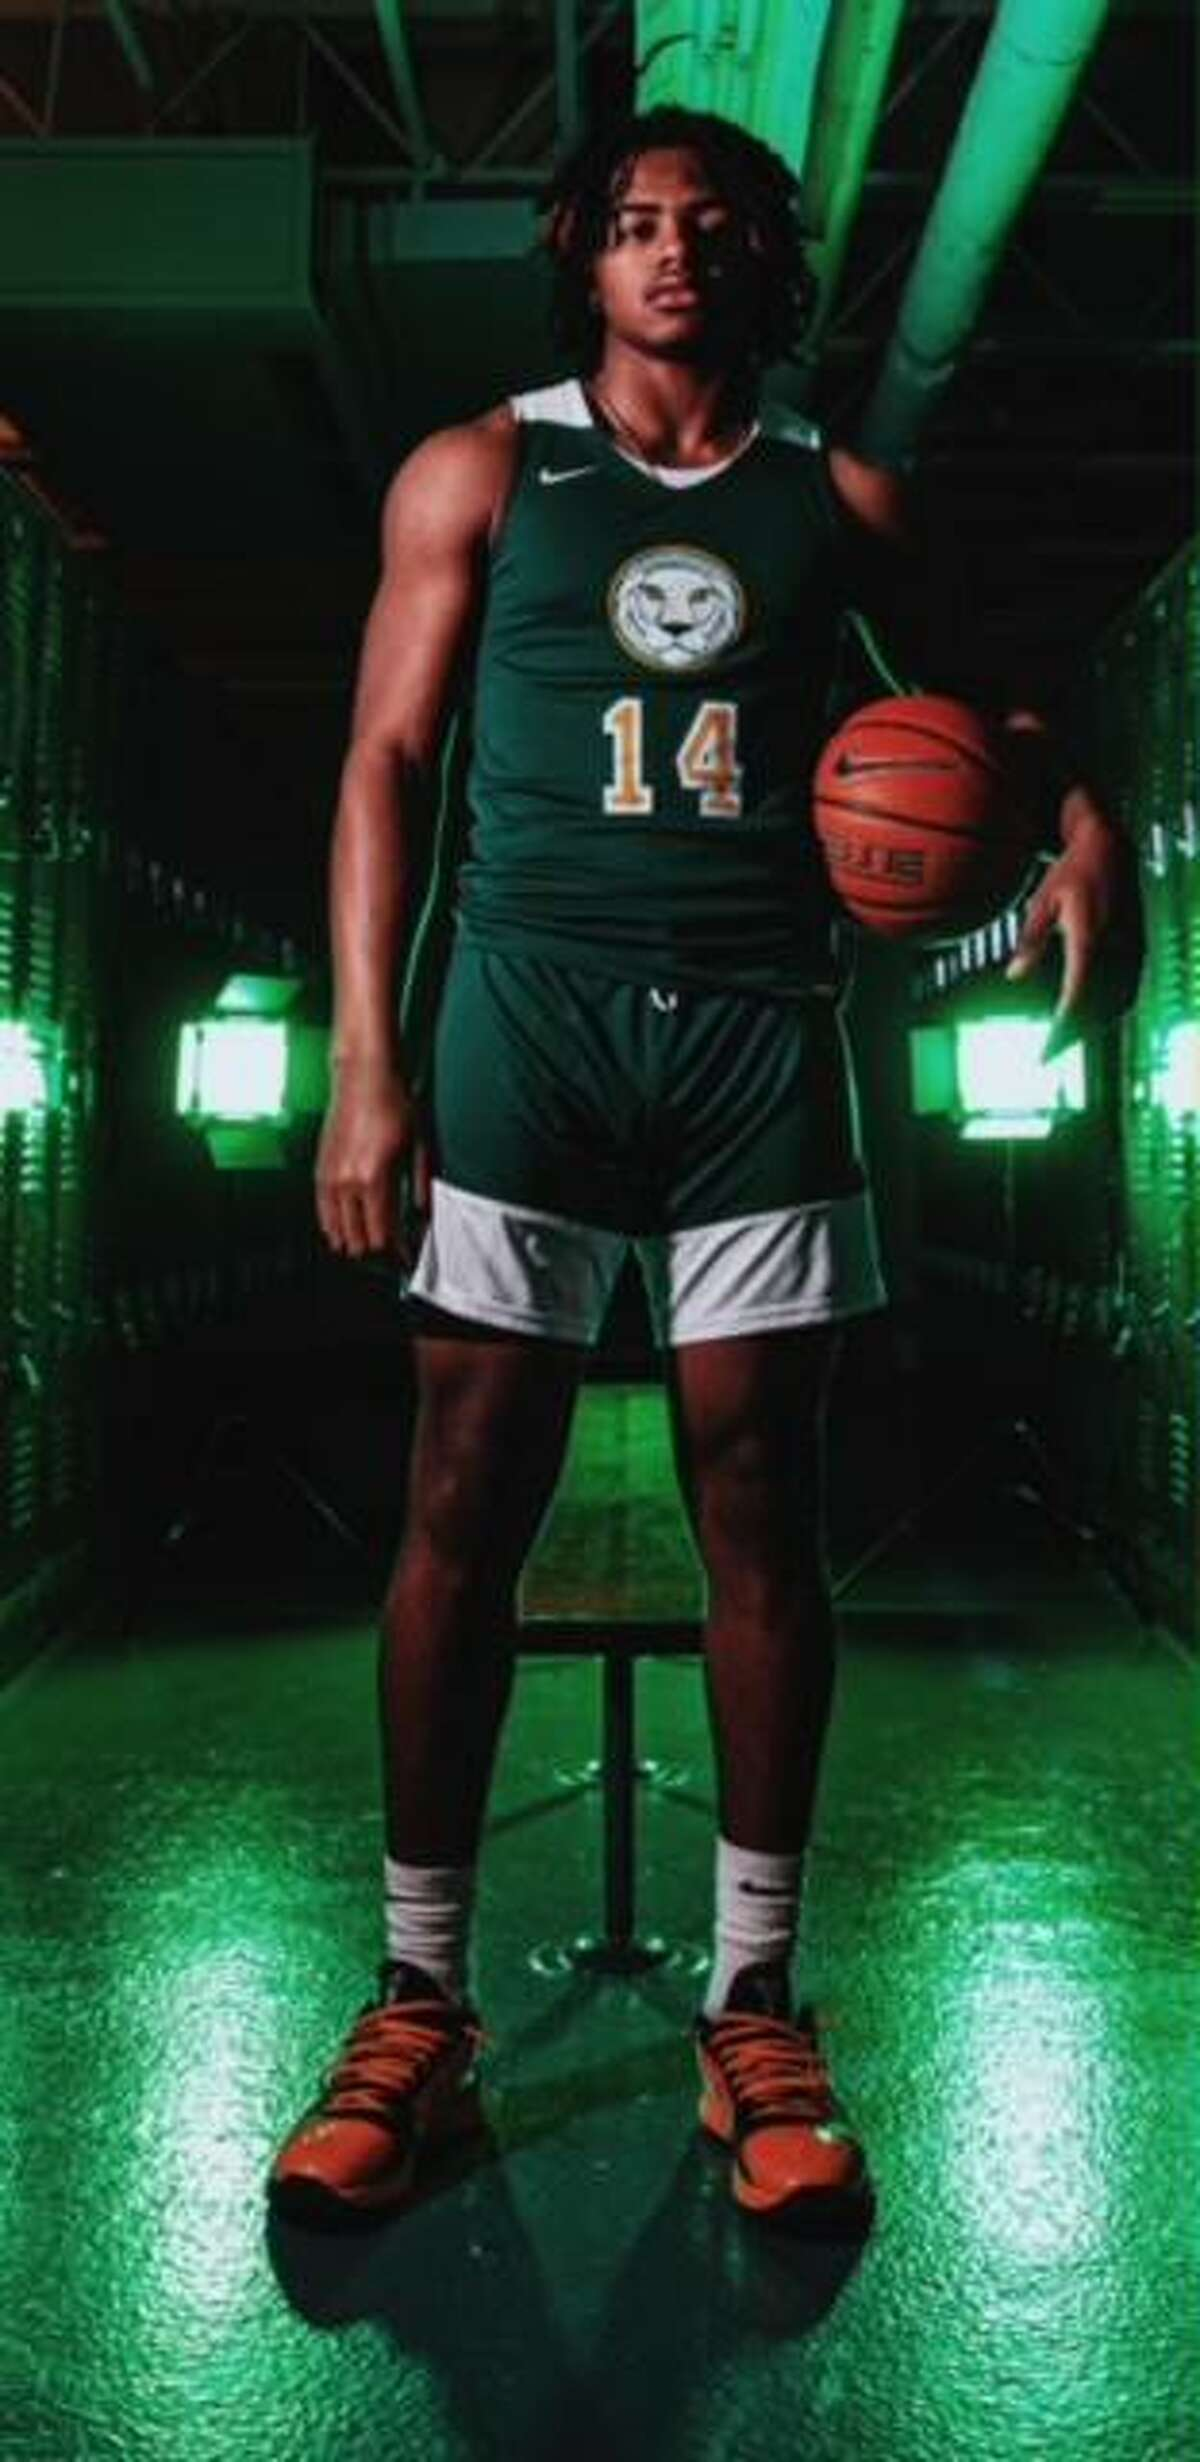 Corey Floyd Jr., a 6-foot-4 guard out of Roselle Catholic in New Jersey, became UConn's first Class of 2022 commit on Thursday night.